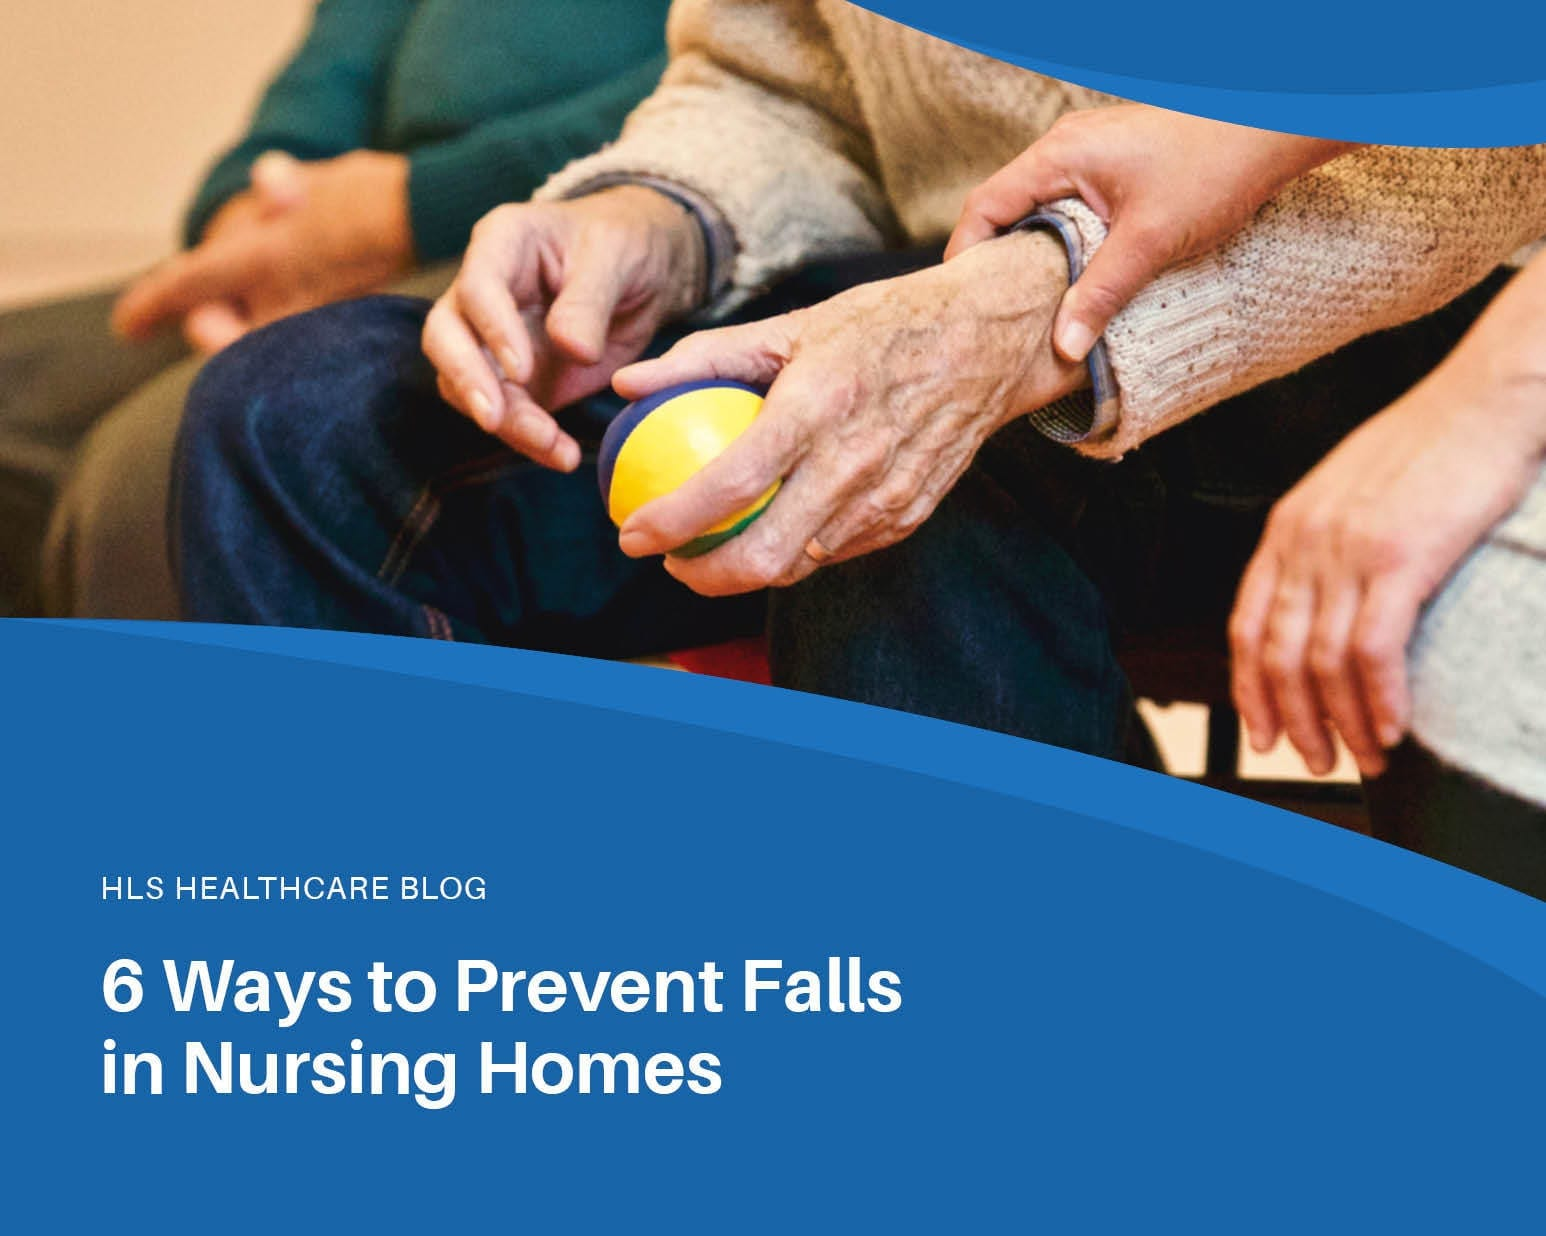 6 Ways to Prevent Falls in Nursing Homes